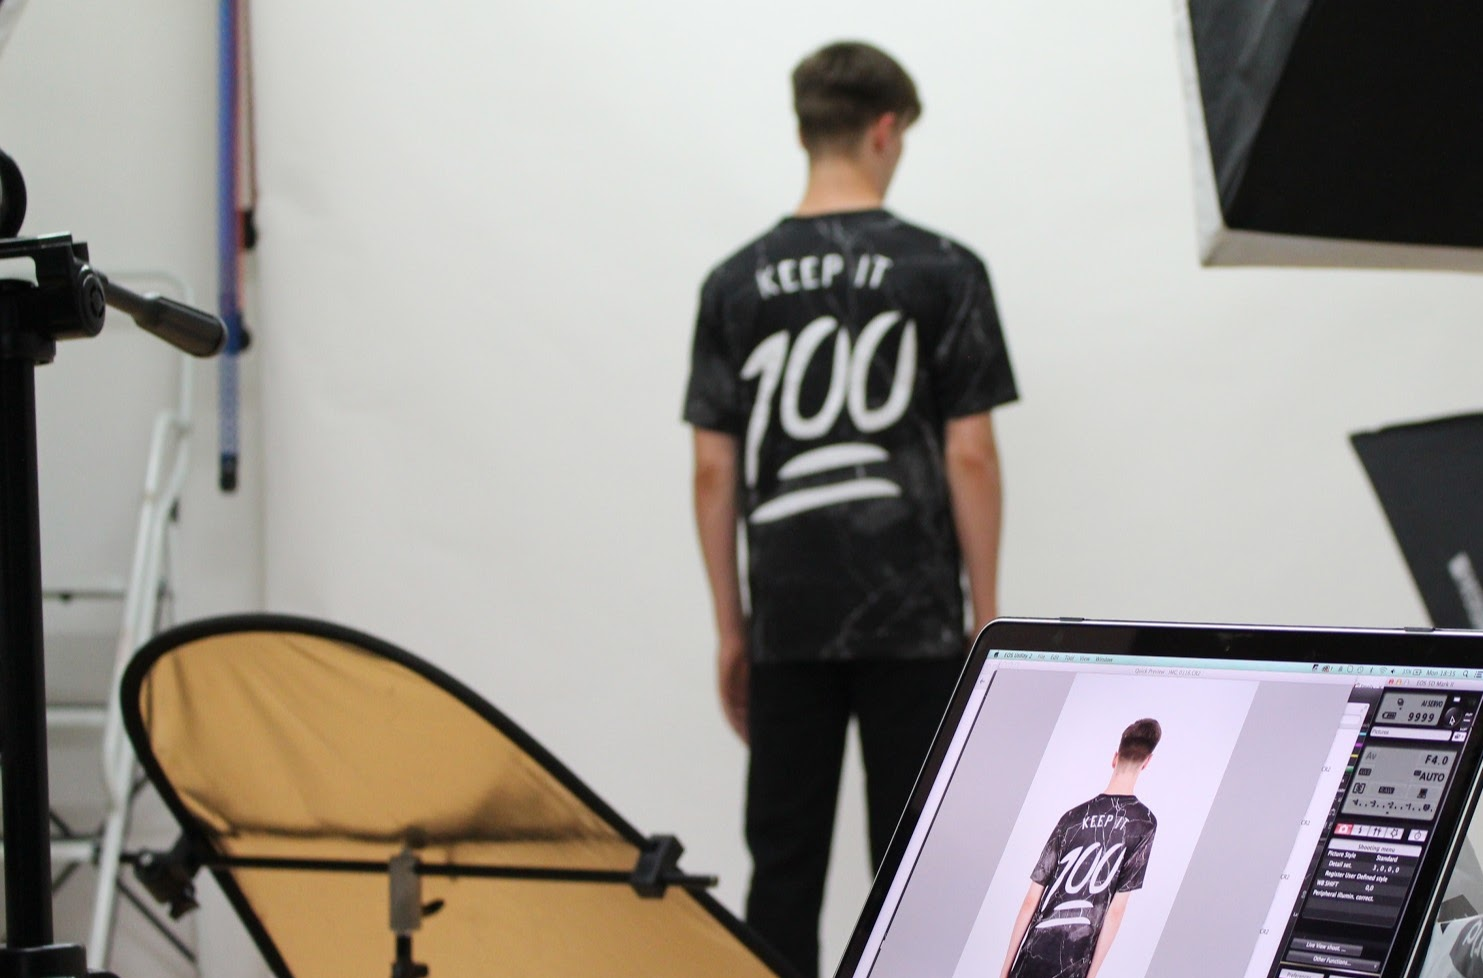 queu-queu-queuqueu-clothing-marble-shirt-keep-it-100-behind-the-scenes-lookbook-shots-photoshoot